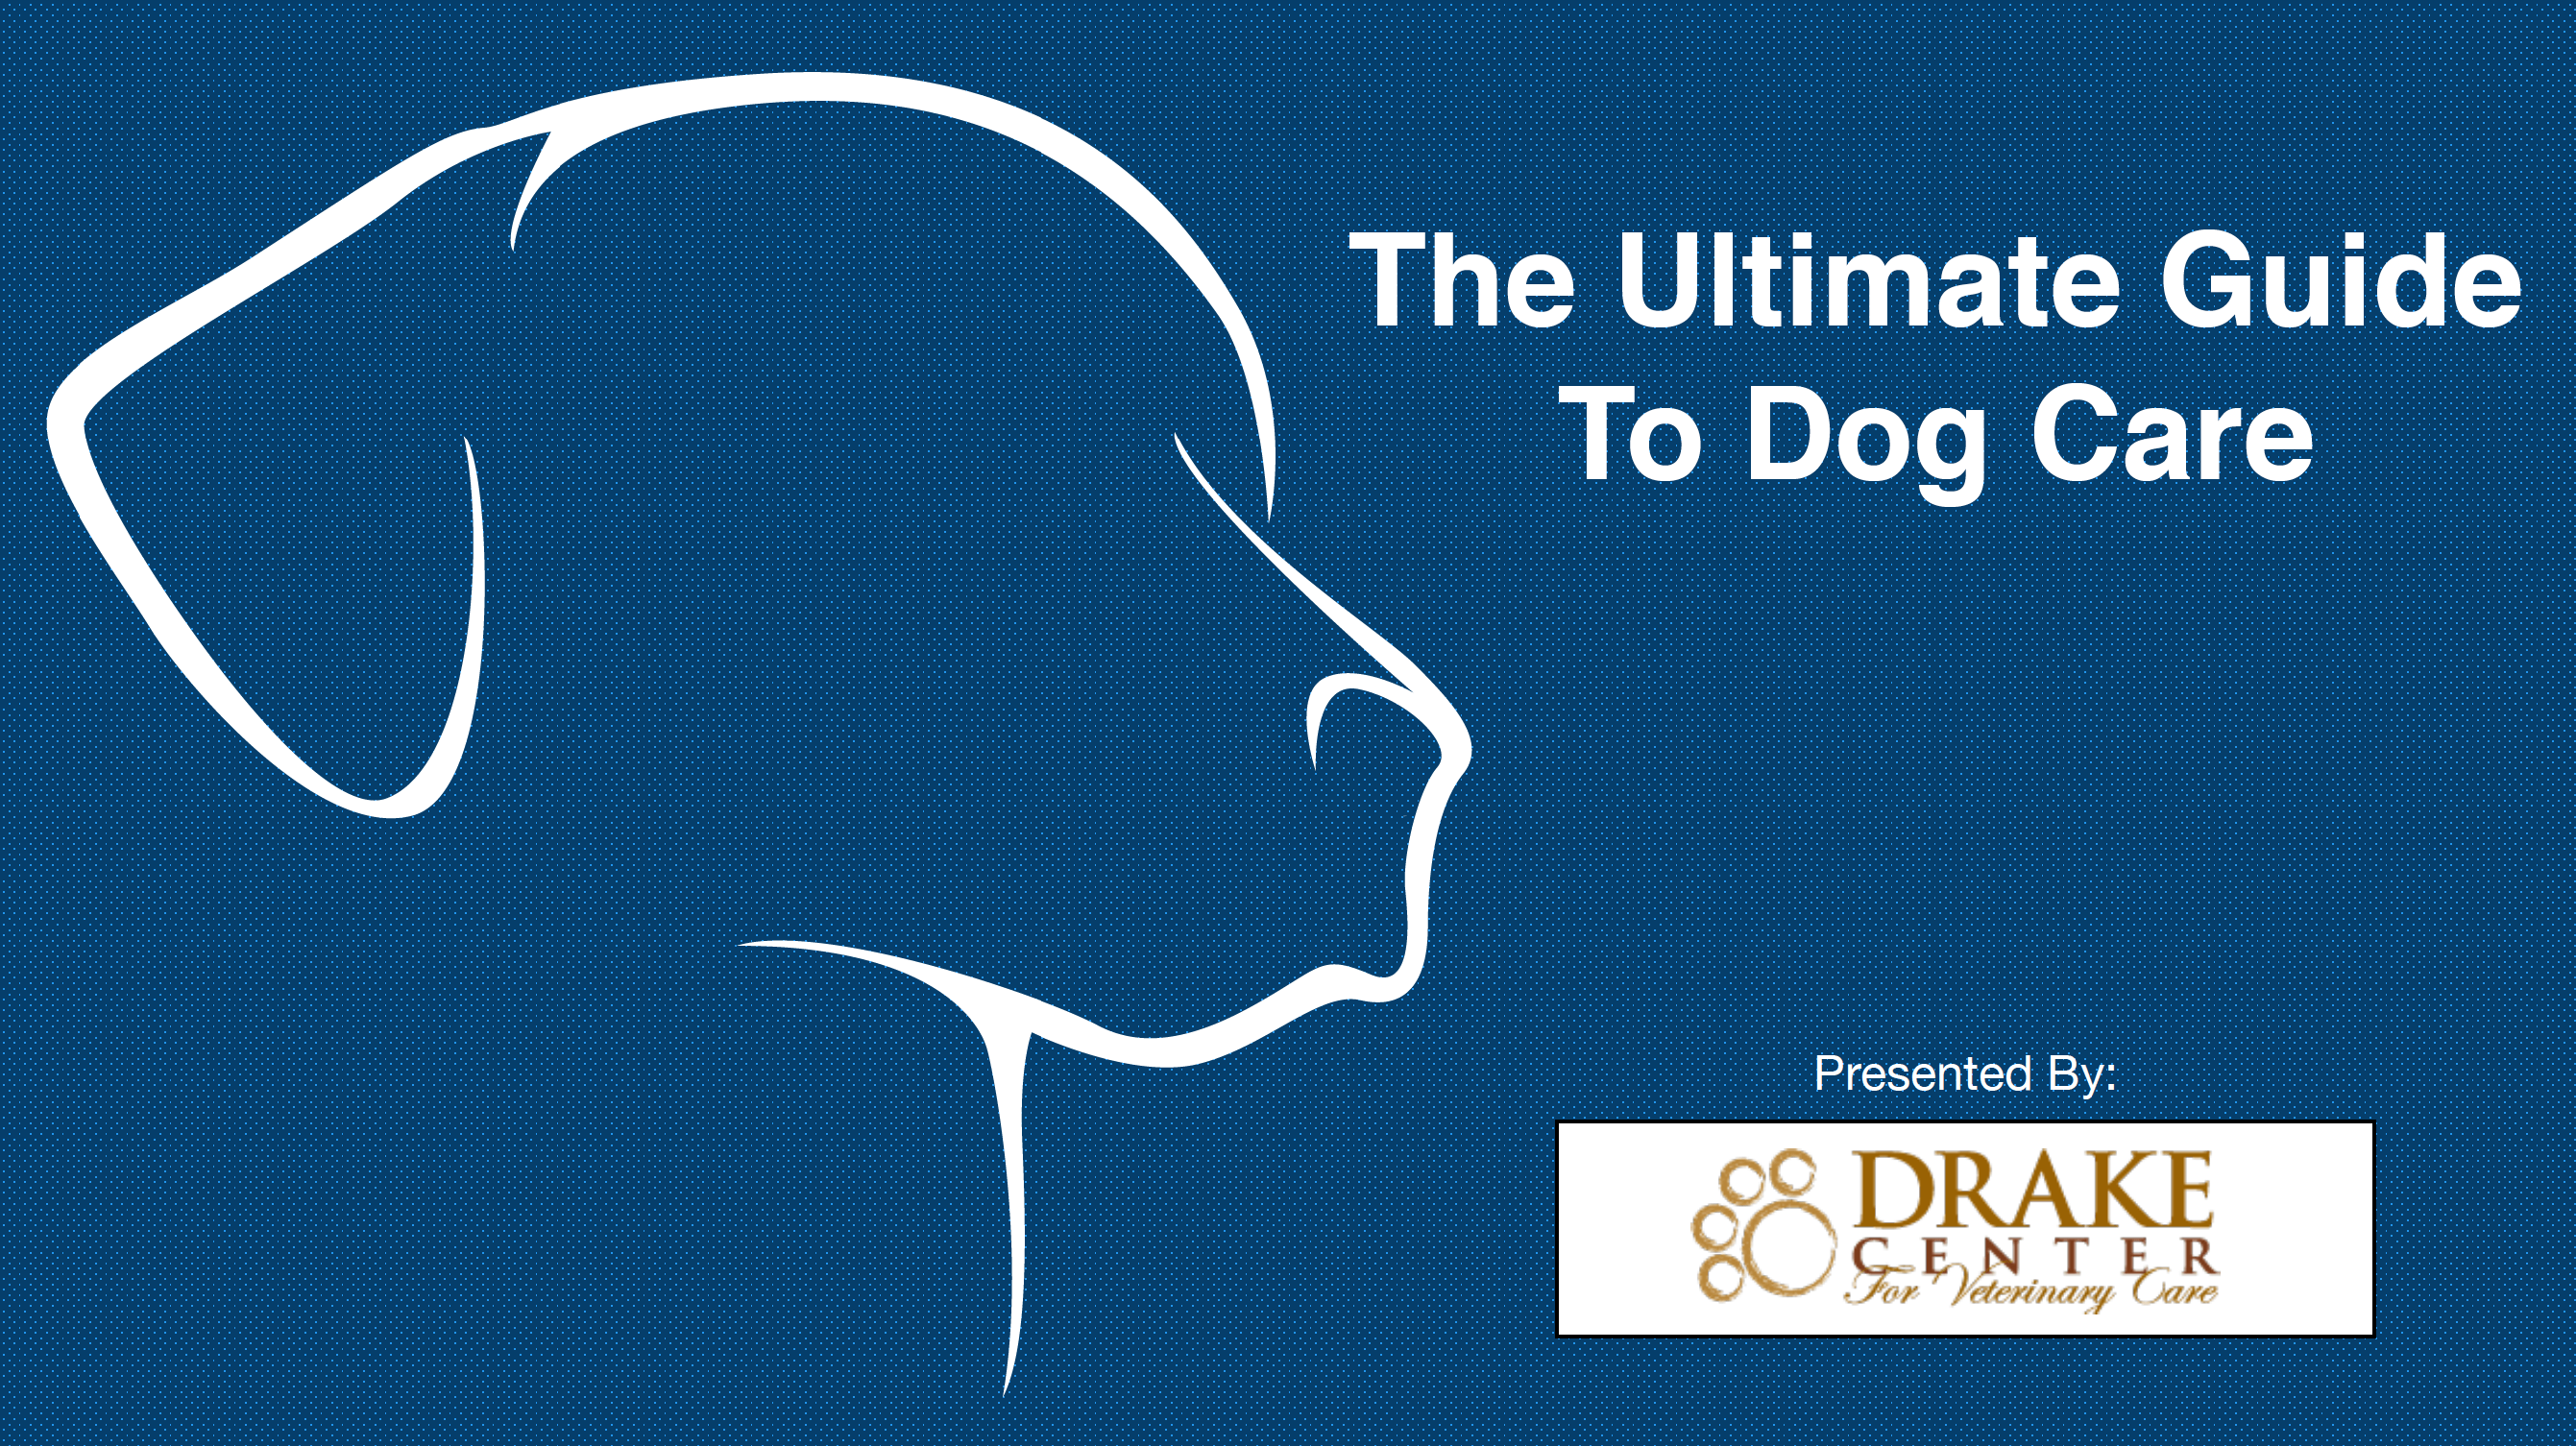 Get The Ultimate Guide To Dog Care for FREE